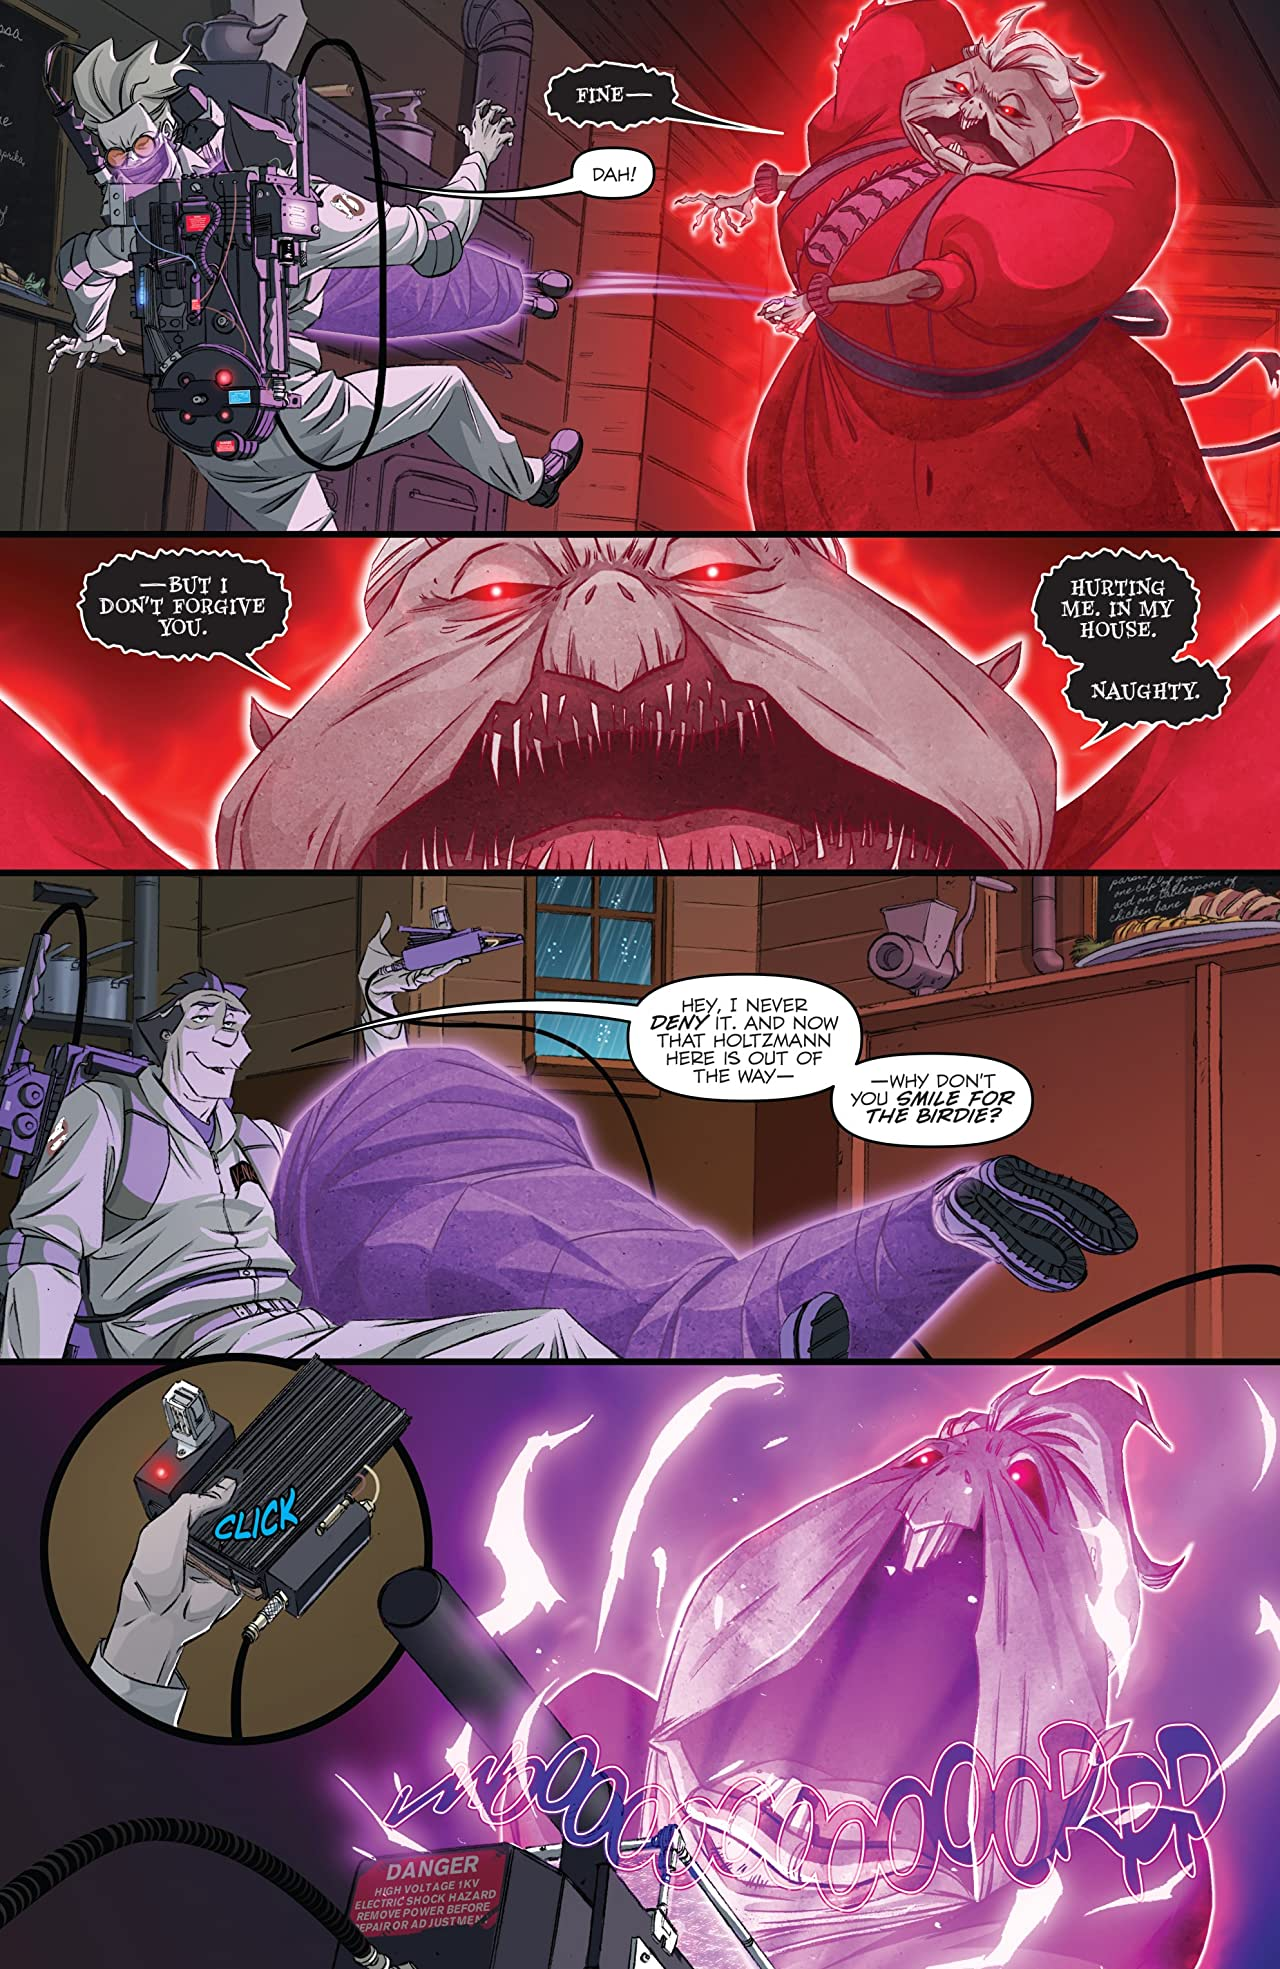 Ghostbusters: Crossing Over #7